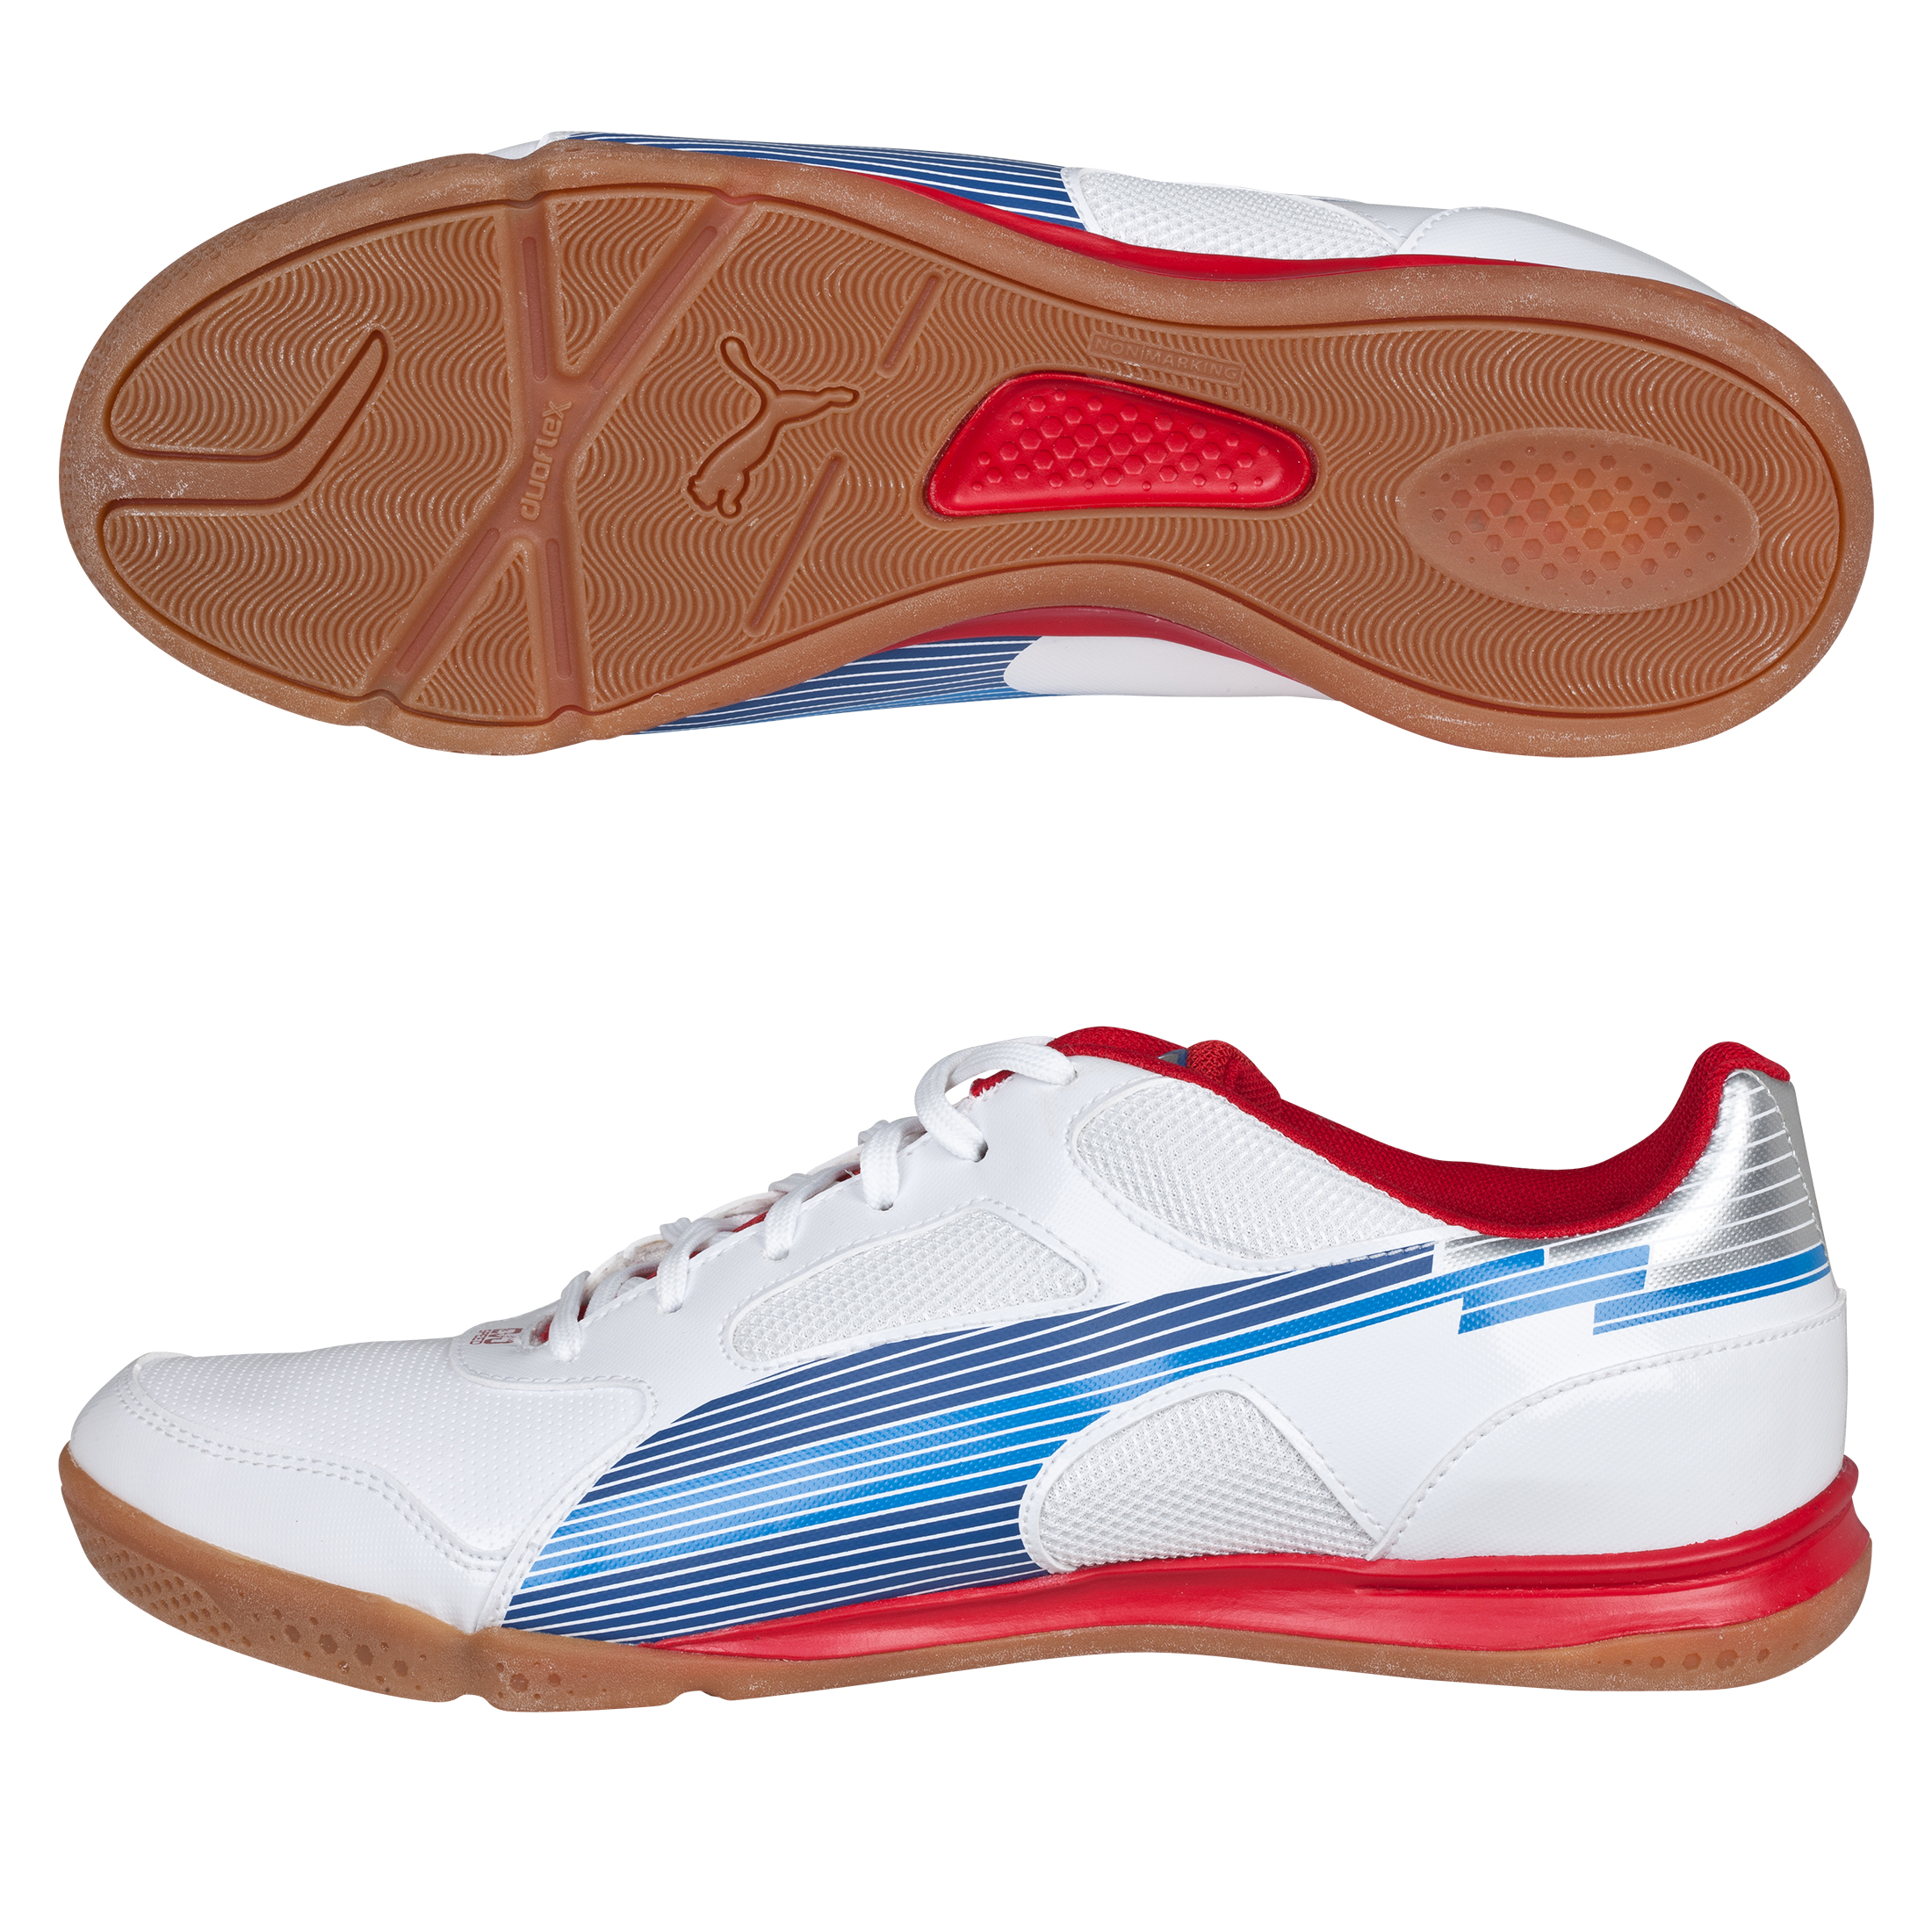 Puma Evospeed 4 Sala Football Trainer - White-Limoges-Ribbon Red